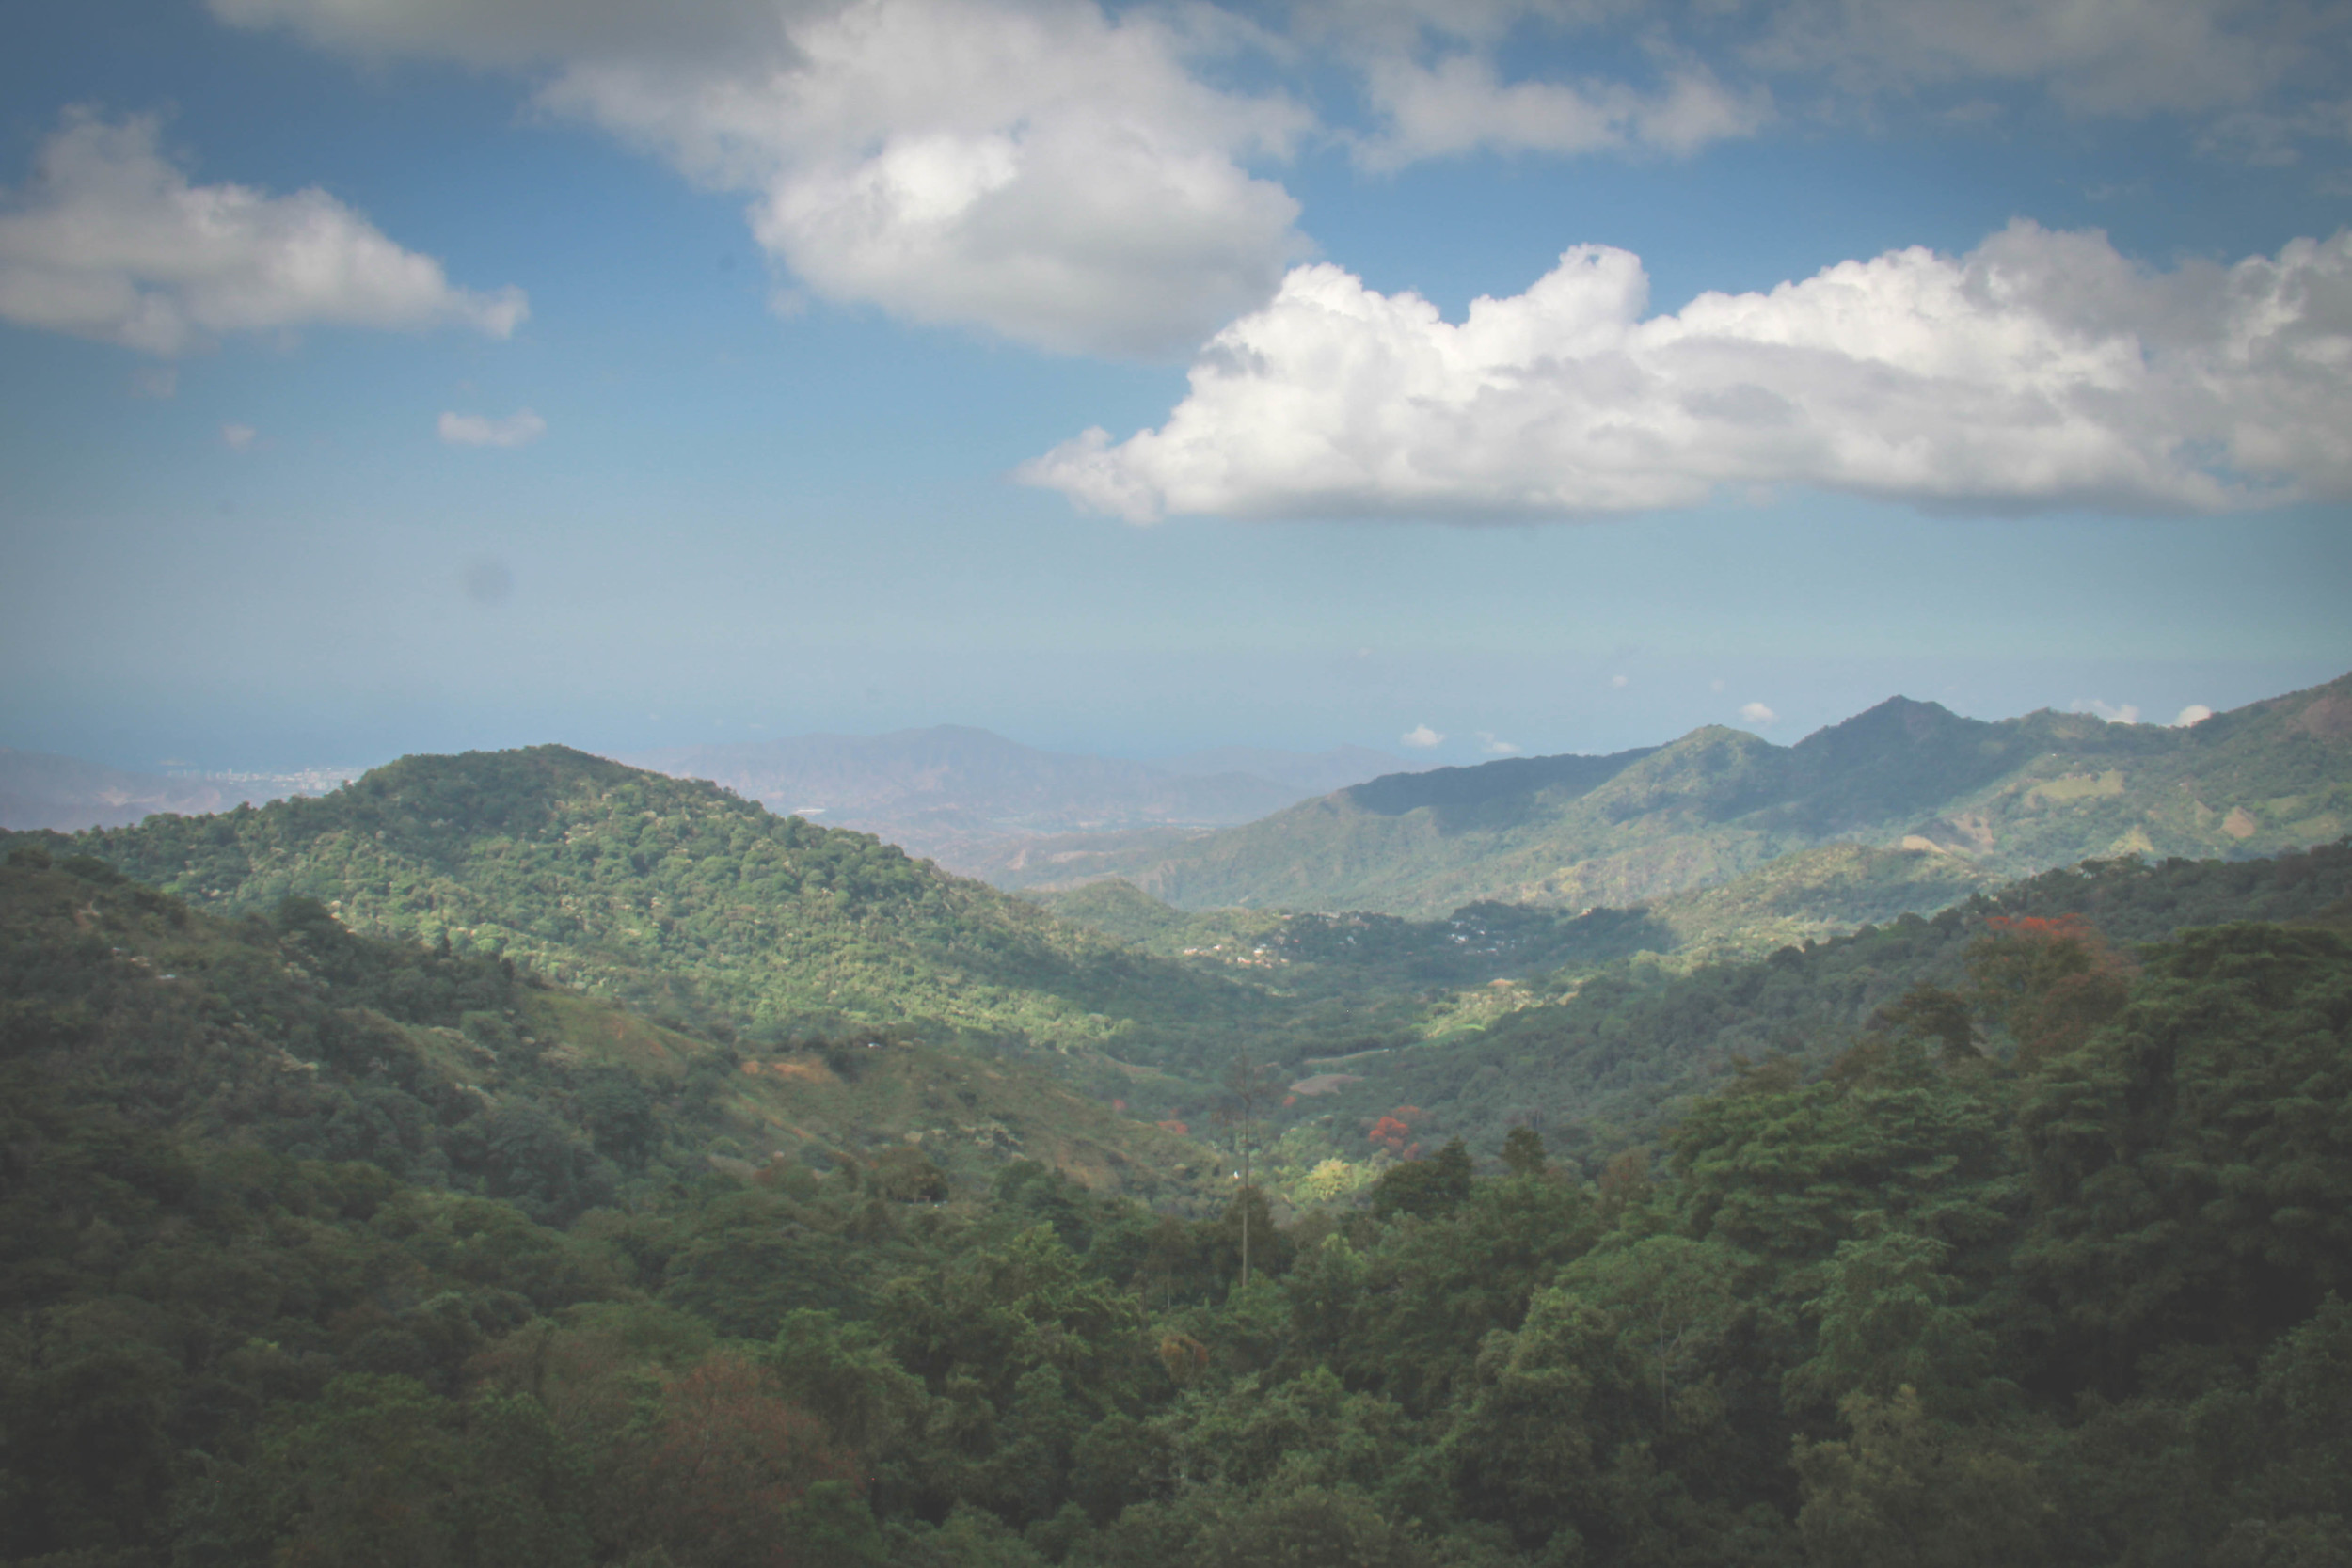 Things to do in Minca, Colombia - Hike up Los Pinos